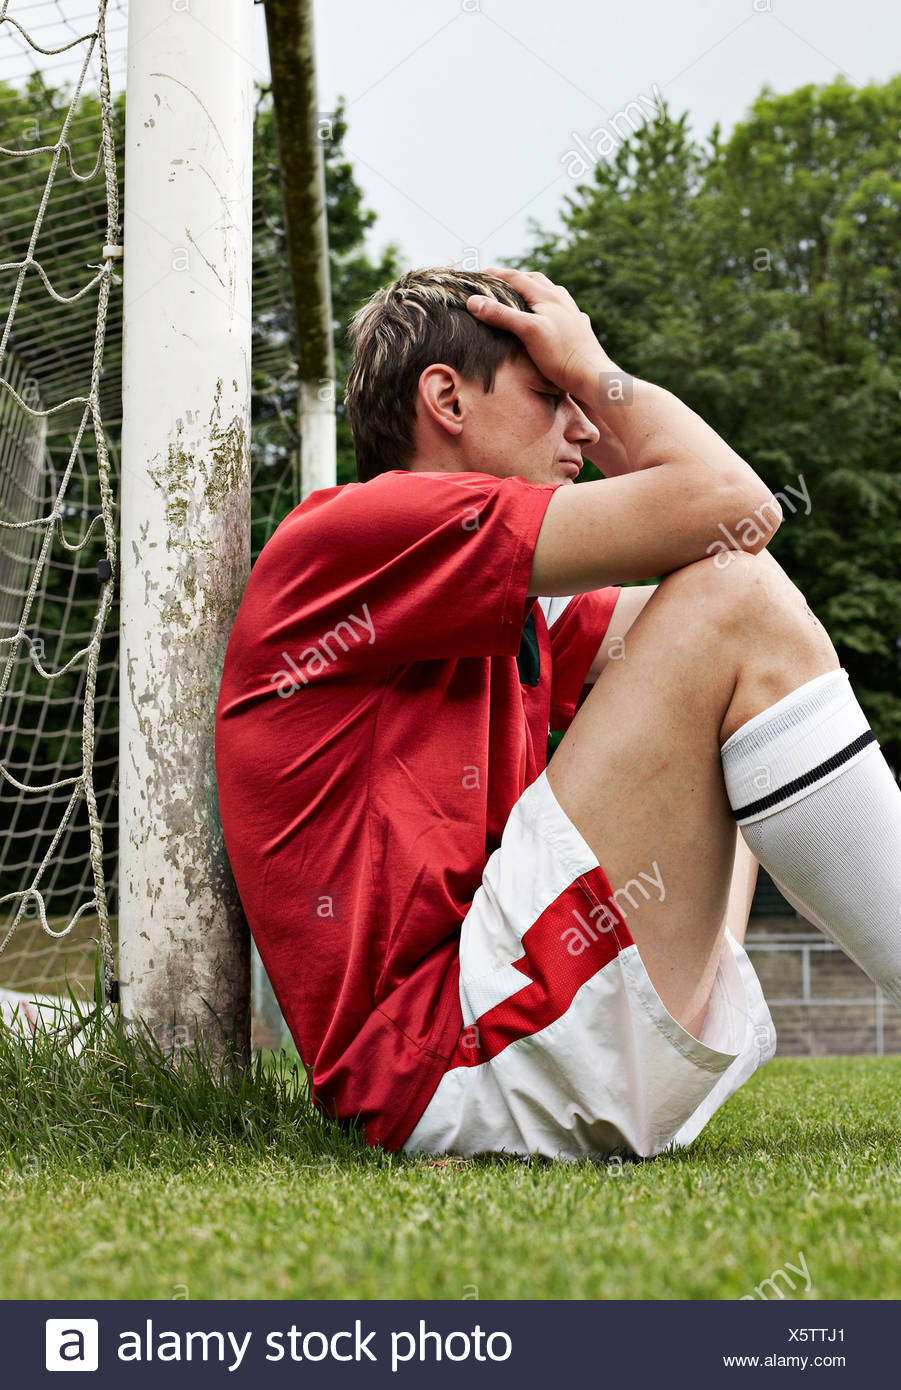 Frustrated soccer player on field - Stock Image